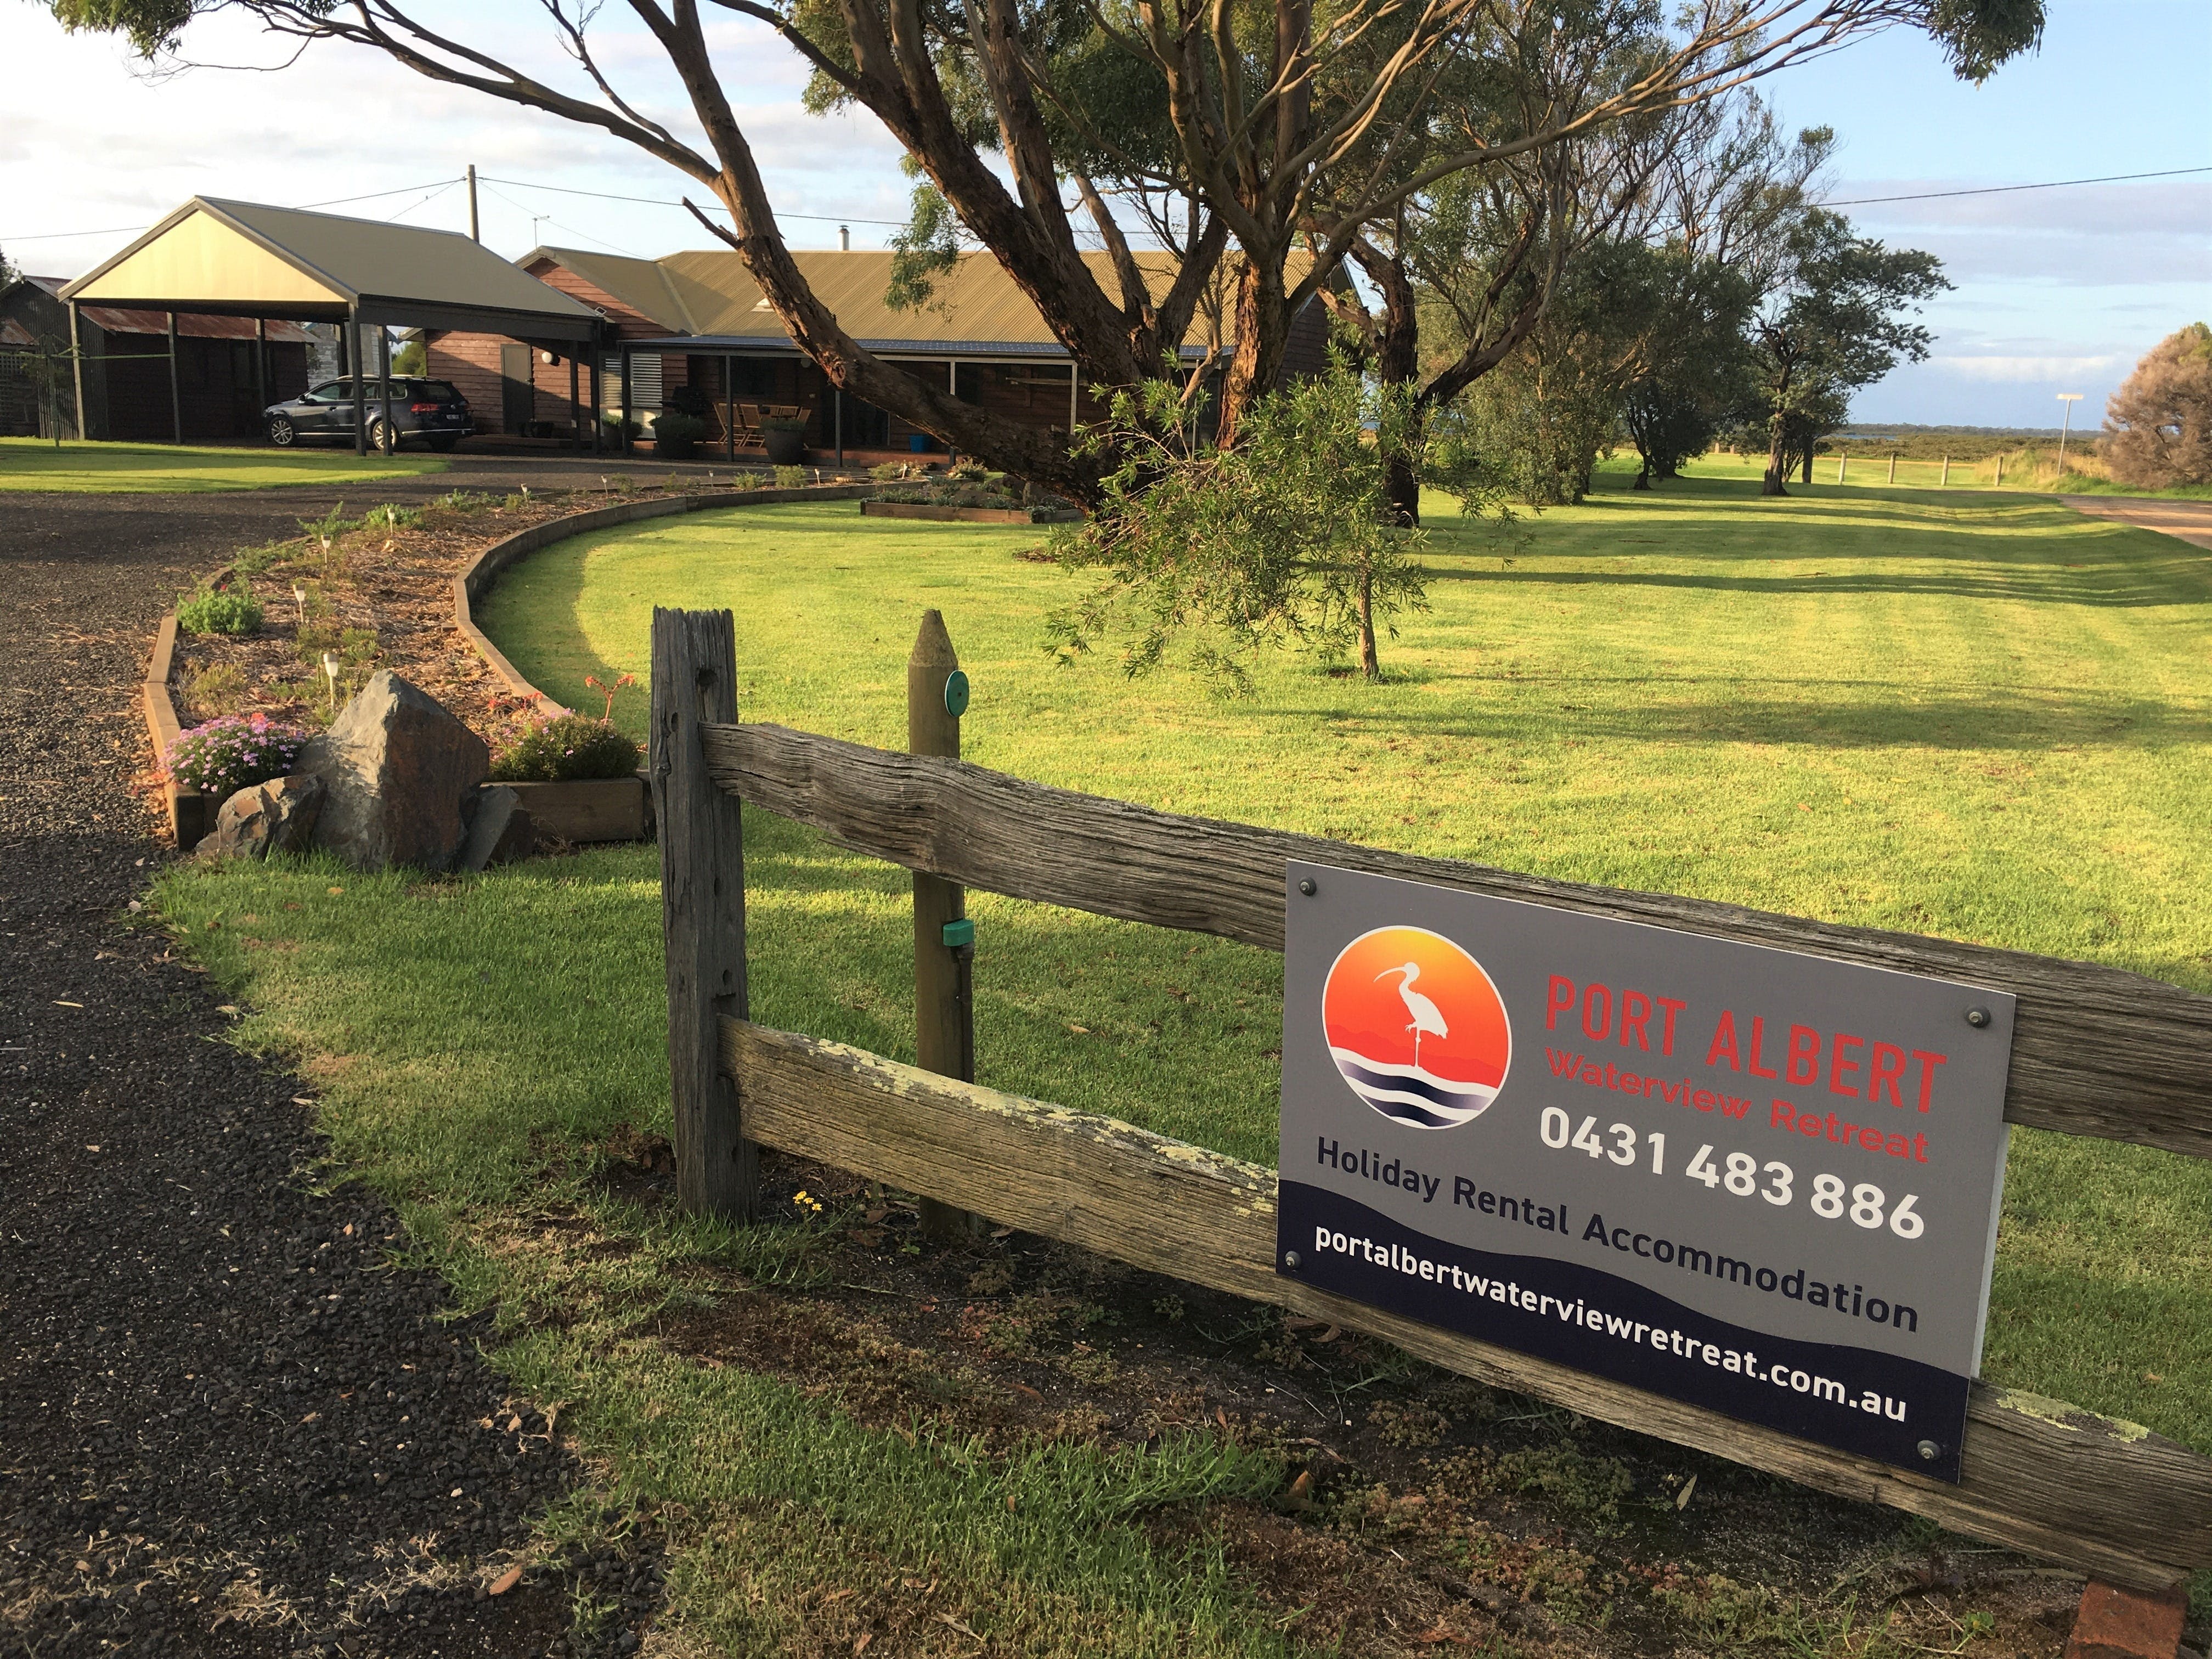 Port Albert Waterview Retreat - Tourism Canberra